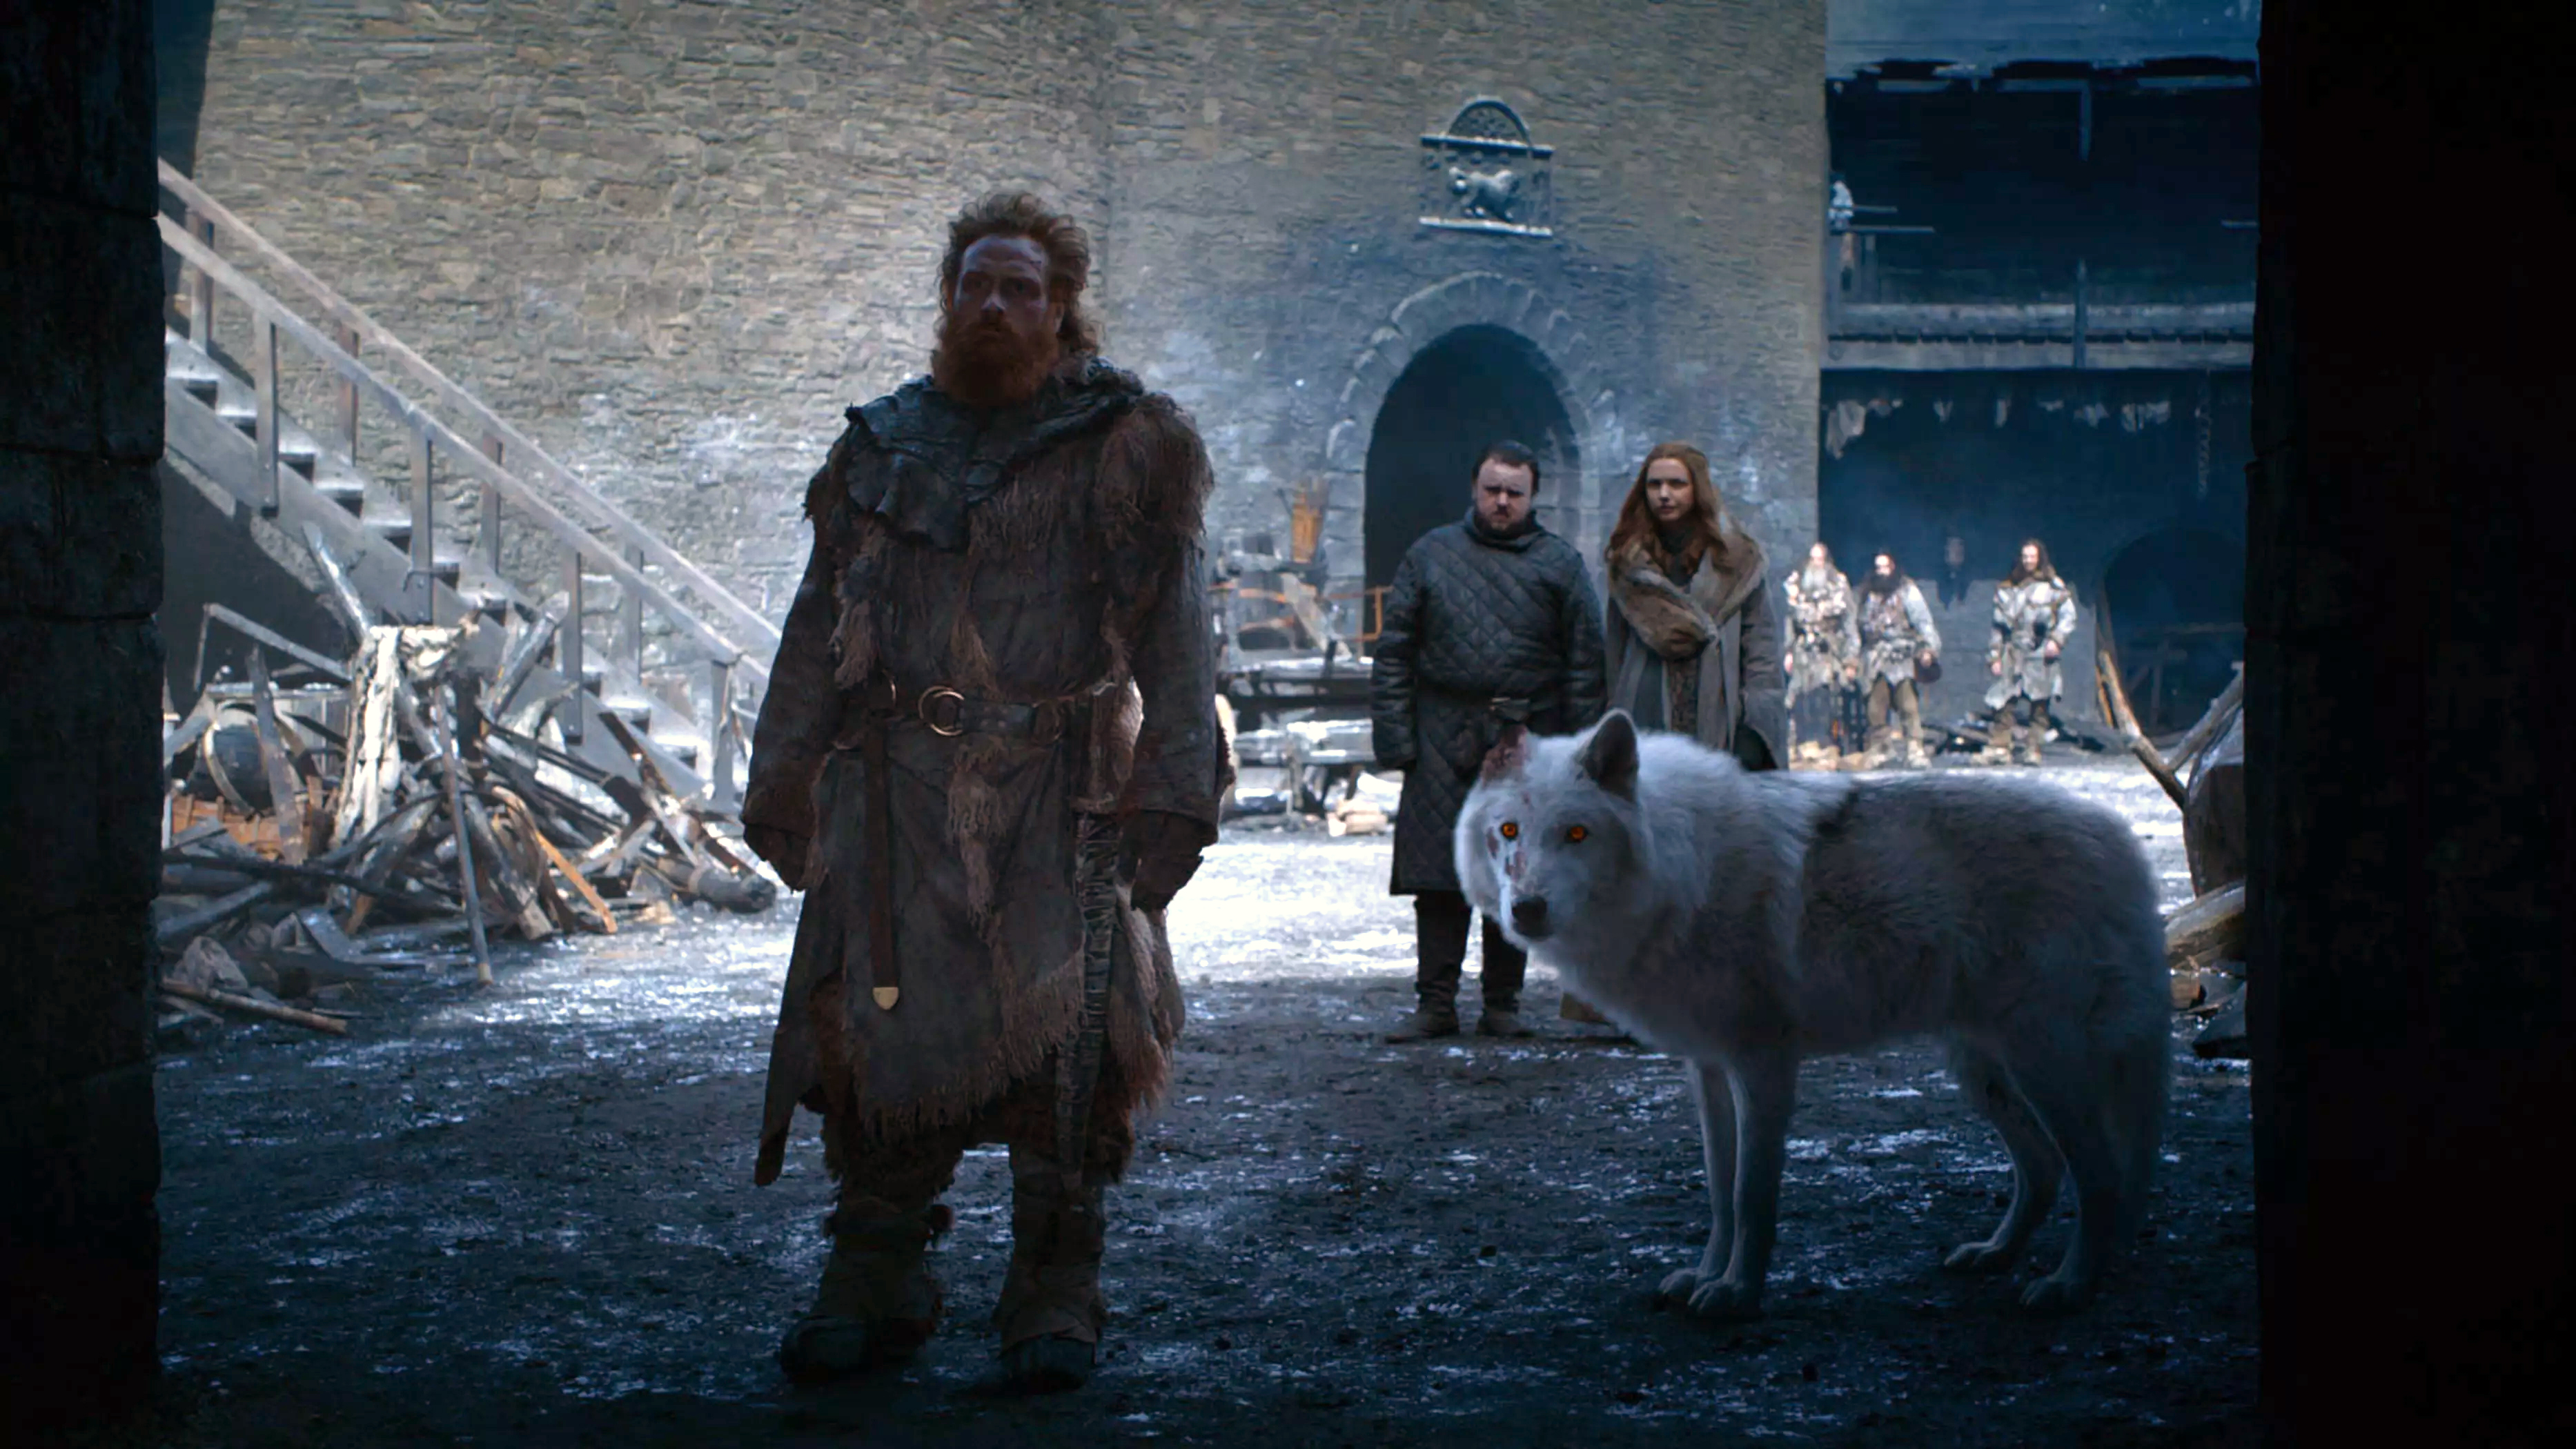 8x04 - The Last of the Starks - Tormund, Ghost, Sam and Gilly